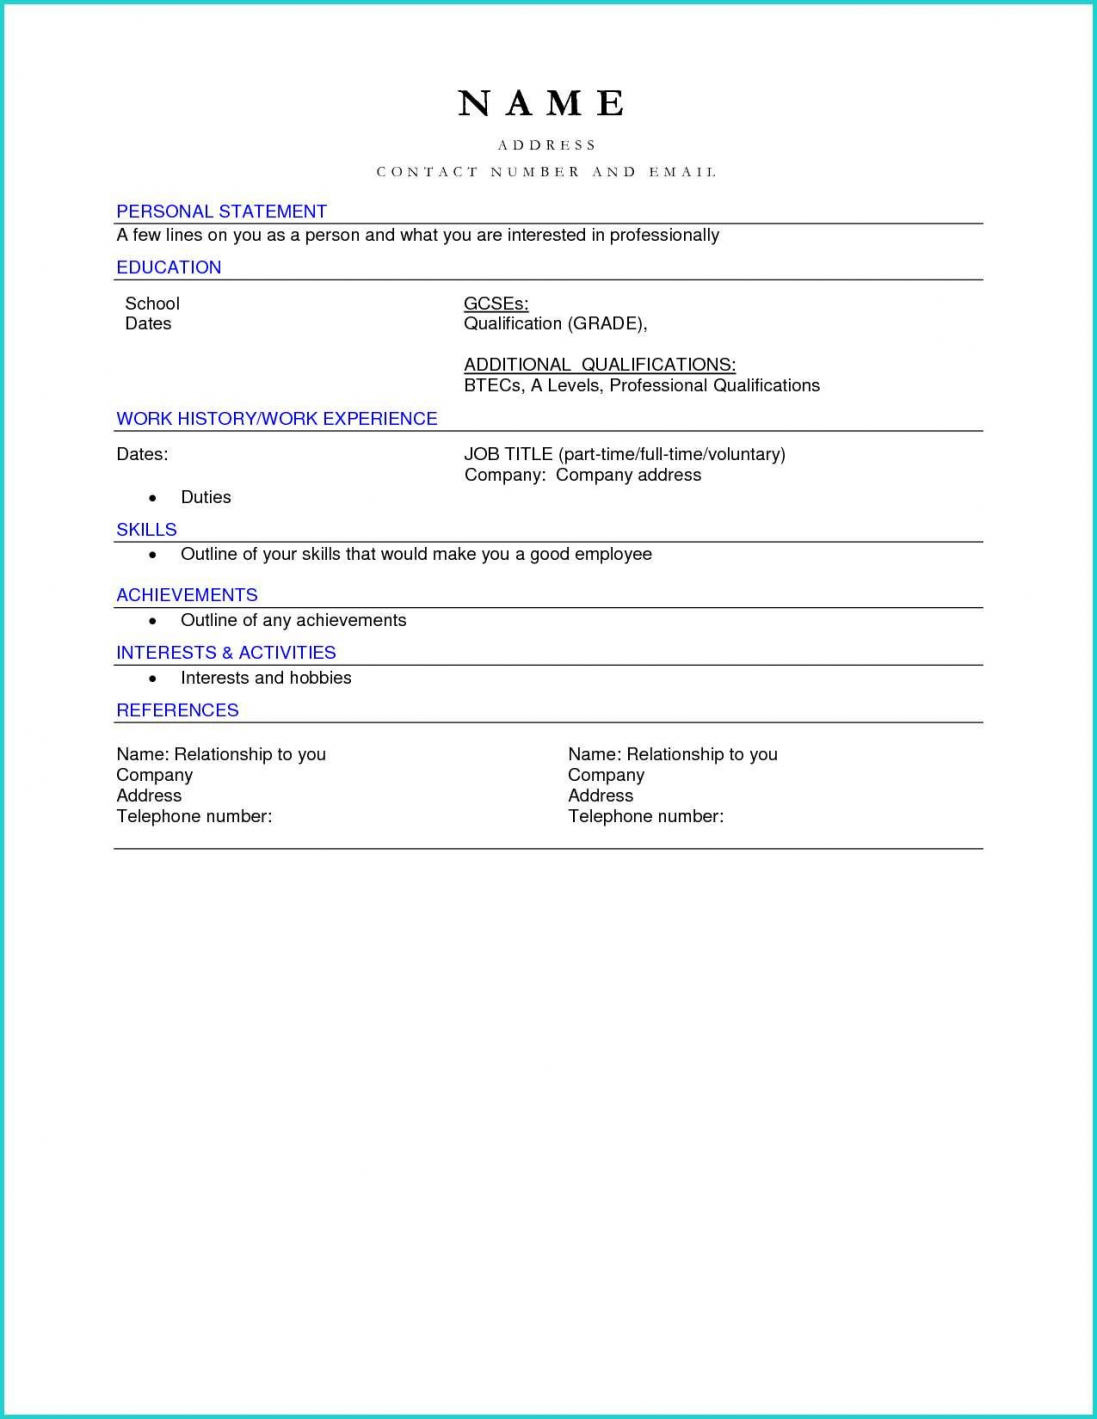 Resume Format Download Pdf Cv Simple Blank For Sradd